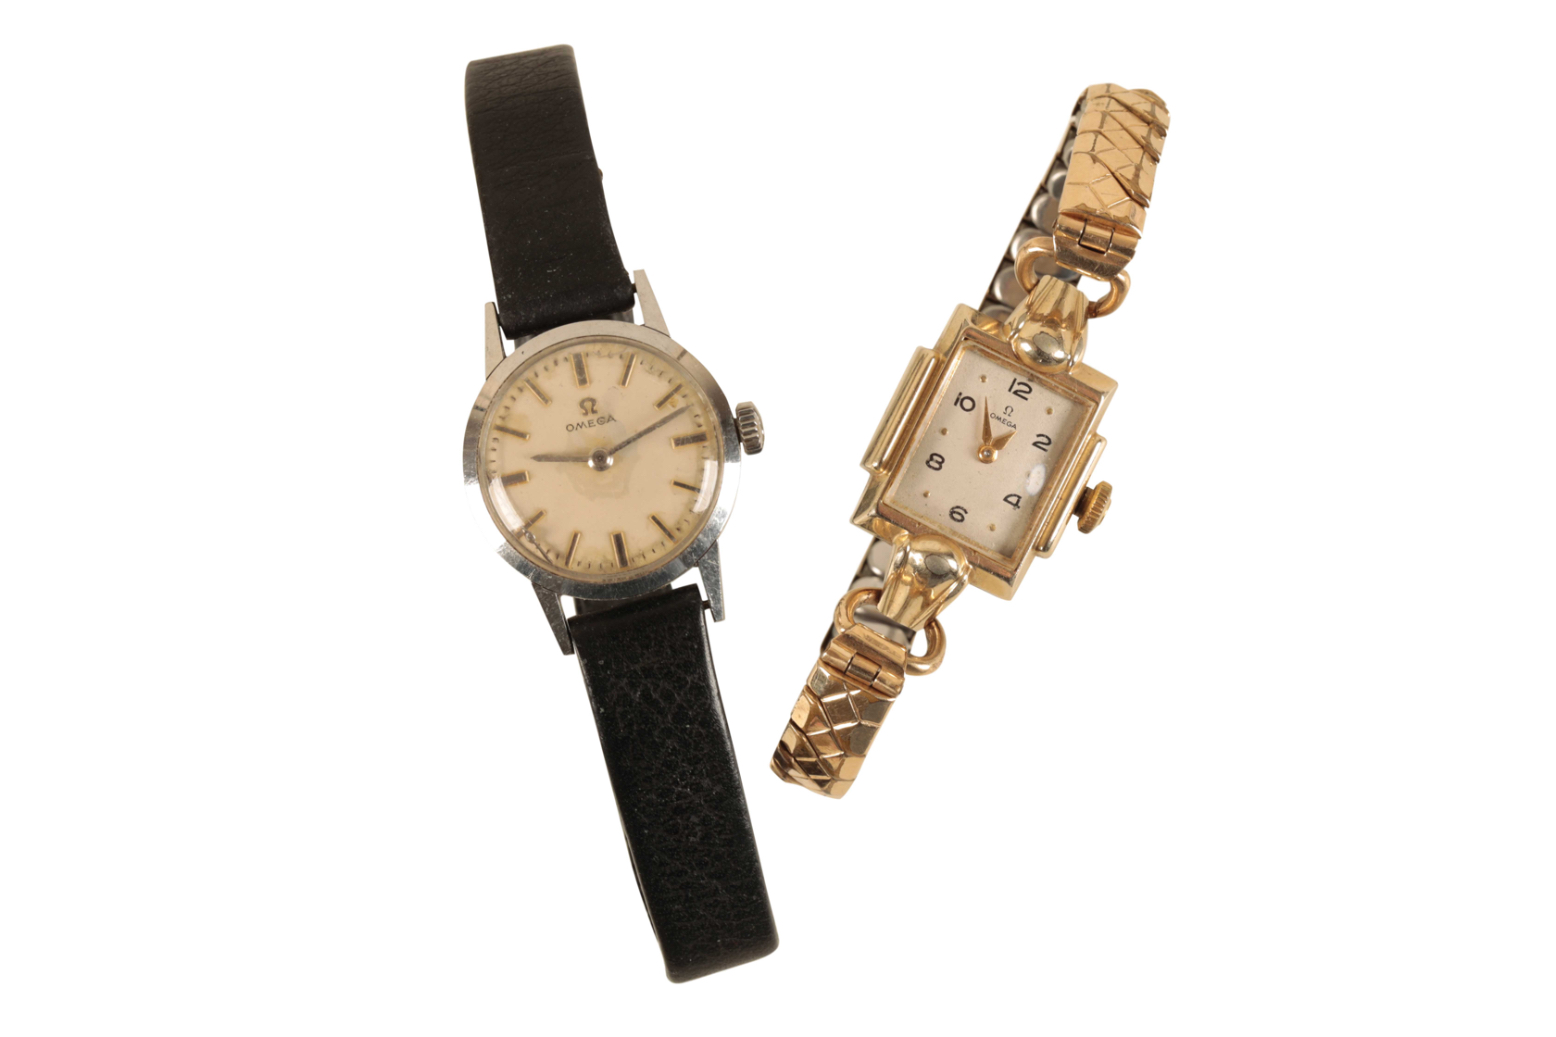 OMEGA LADY'S STAINLESS STEEL WRIST WATCH